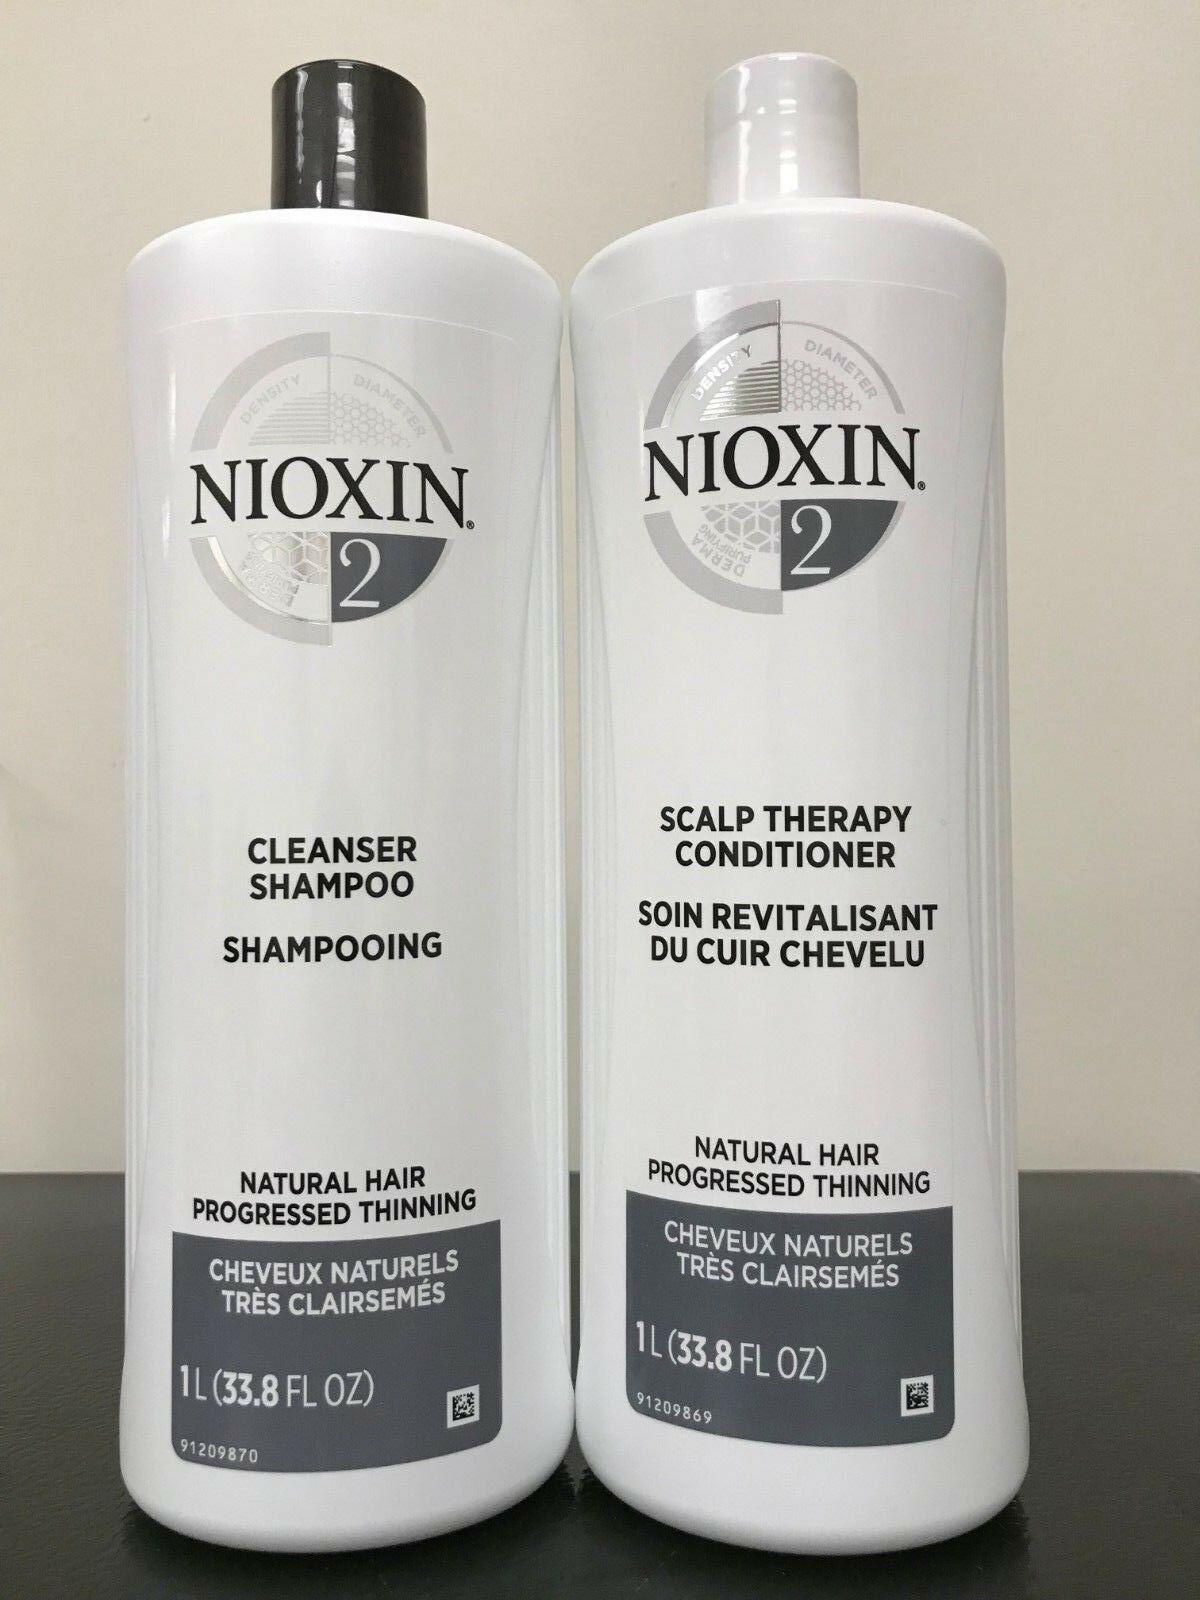 Nioxin System 2 Cleanser & Scalp Therapy Conditioner DUO SET